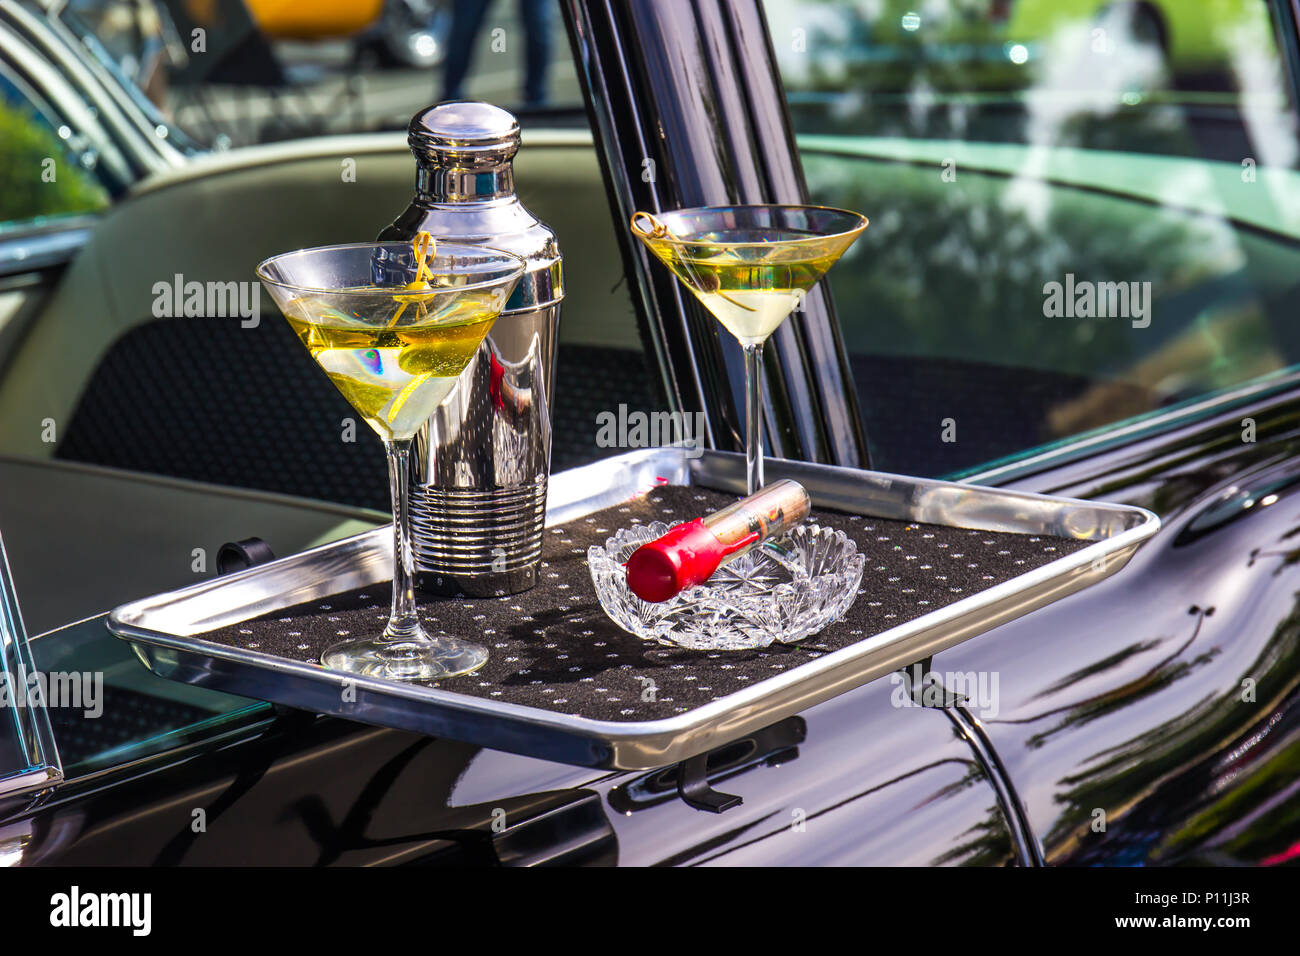 Modern Car Hop Tray With Cocktails And Cigar - Stock Image